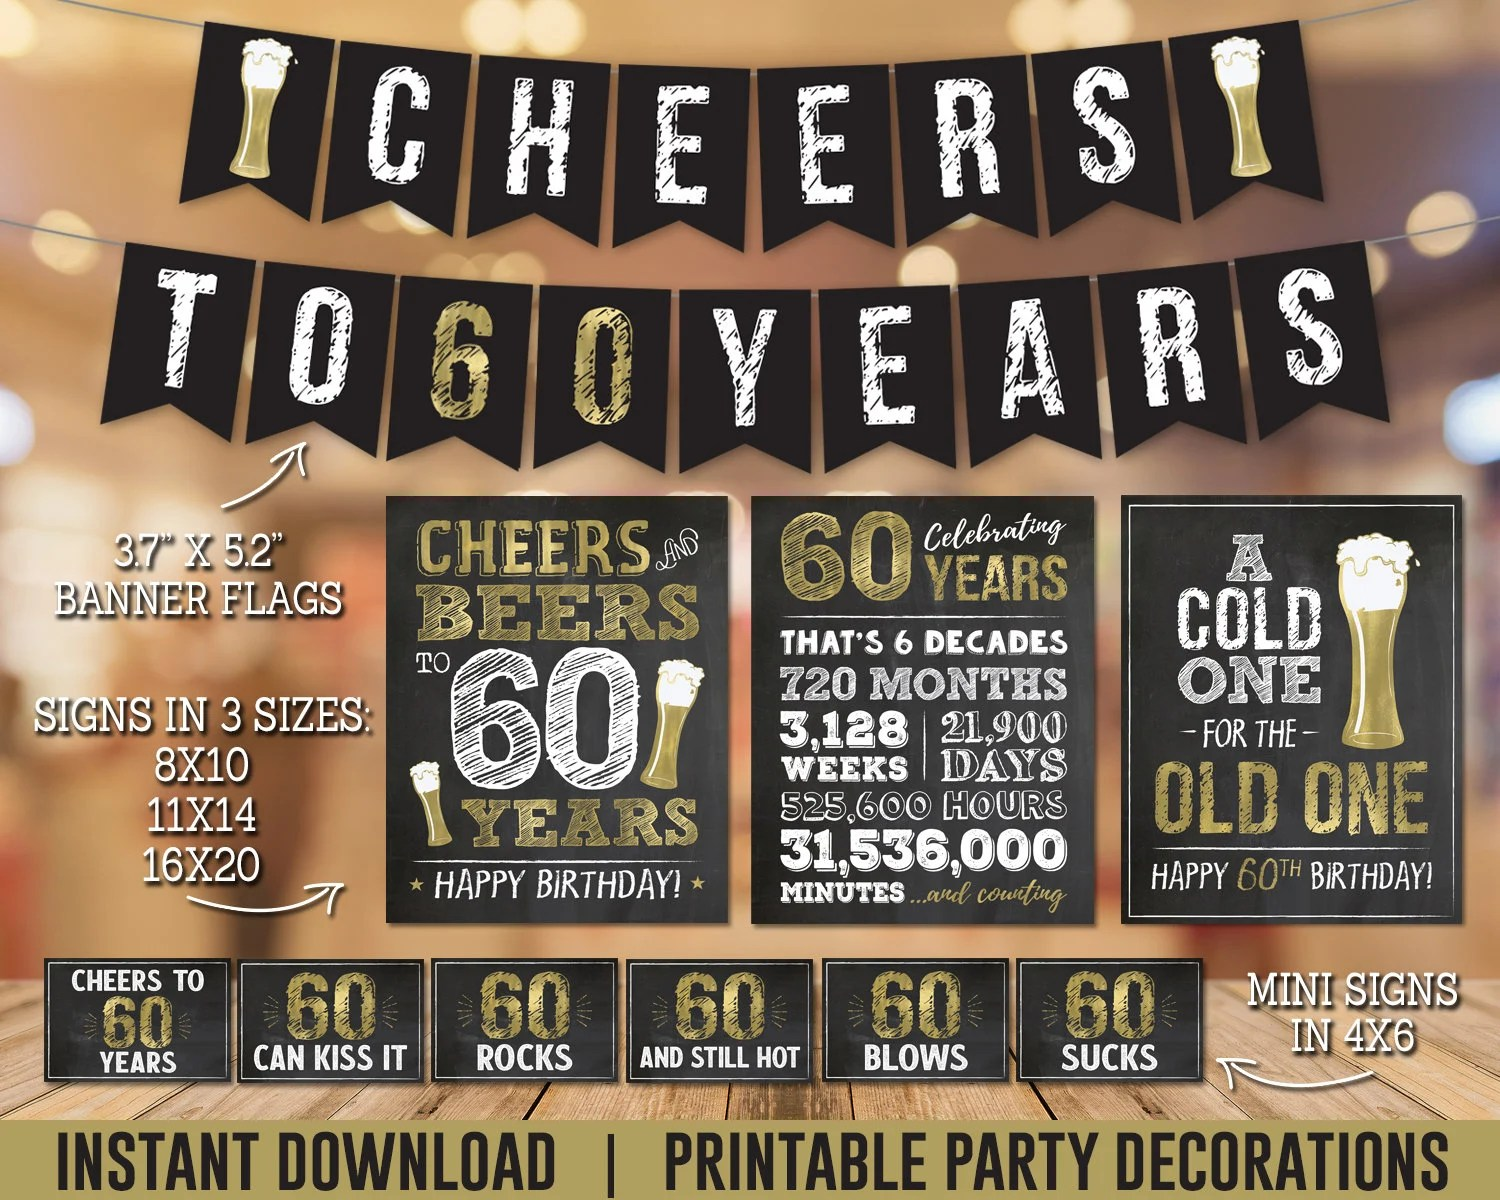 Printable 60th Birthday Party Decorations Pack For 60th Birthday Beers Party Instant Download Cheers And Beers To 60 Years Banners Signs Party Decor Jewellerymilad Com